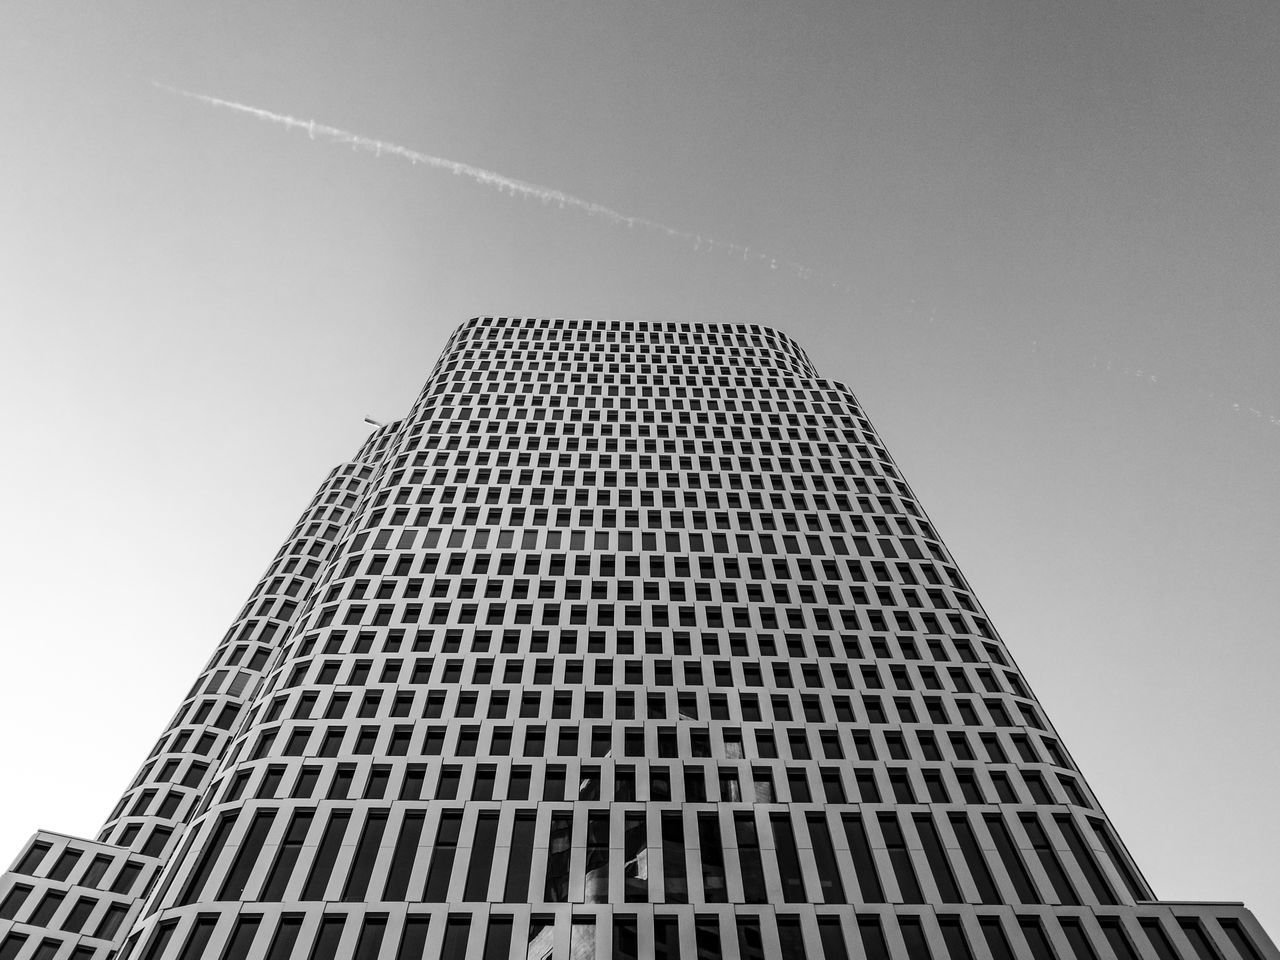 Upperwest Architecture Architecture_collection Architecturelovers Berlin Berlin Black & White Berlin Monochrome Berlin Schwarzweiss Berliner Ansichten Black And White Berlin Blackandwhite Photography Building Exterior Built Structure City Cityexplorer Day HuaweiP9 Low Angle View Monochrome Monochrome Berlin No People Schwarzweiß Skyscraper Urban Geometry Urbanphotography